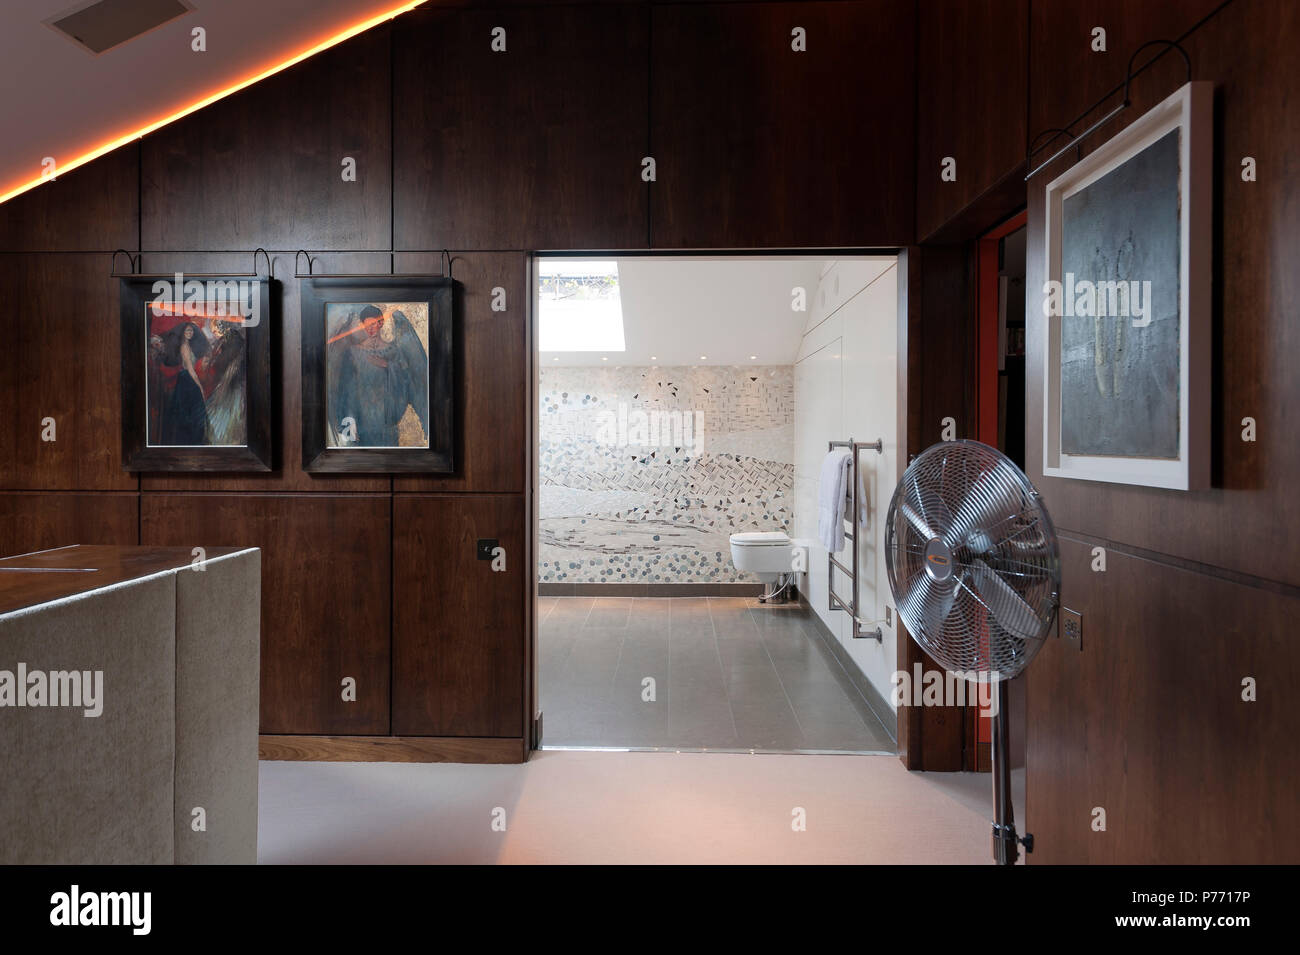 Fan in masculine bedroom by bathroom - Stock Image